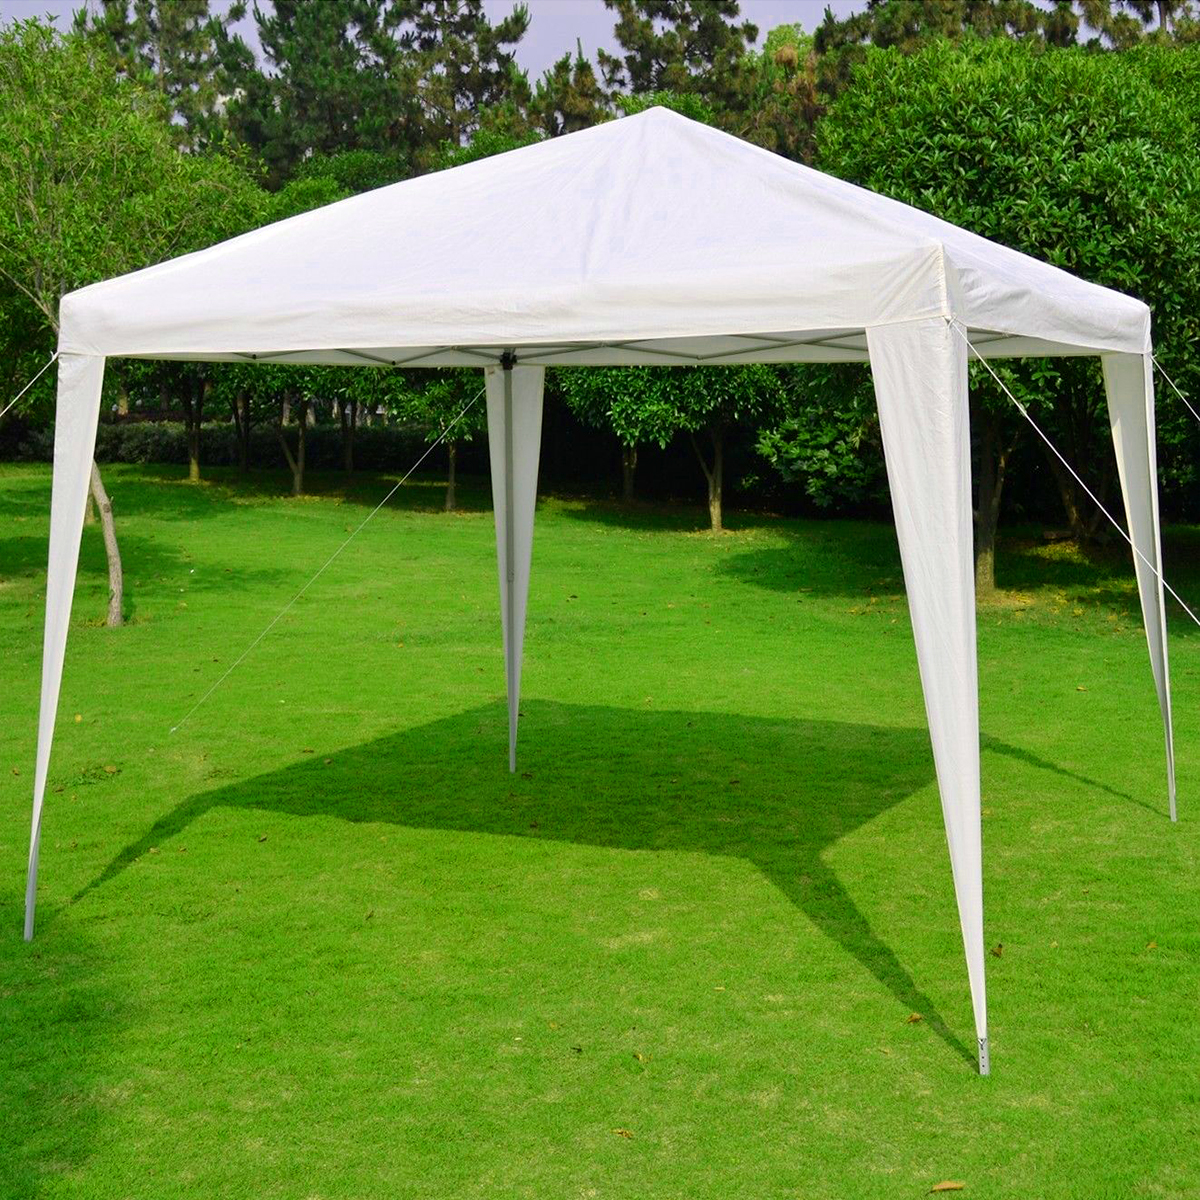 eWarehouseDirect 10'X10' Eazy POP UP Outdoor Instant Canopy Tent Gazebo Wedding Party Shelter Folding PU New